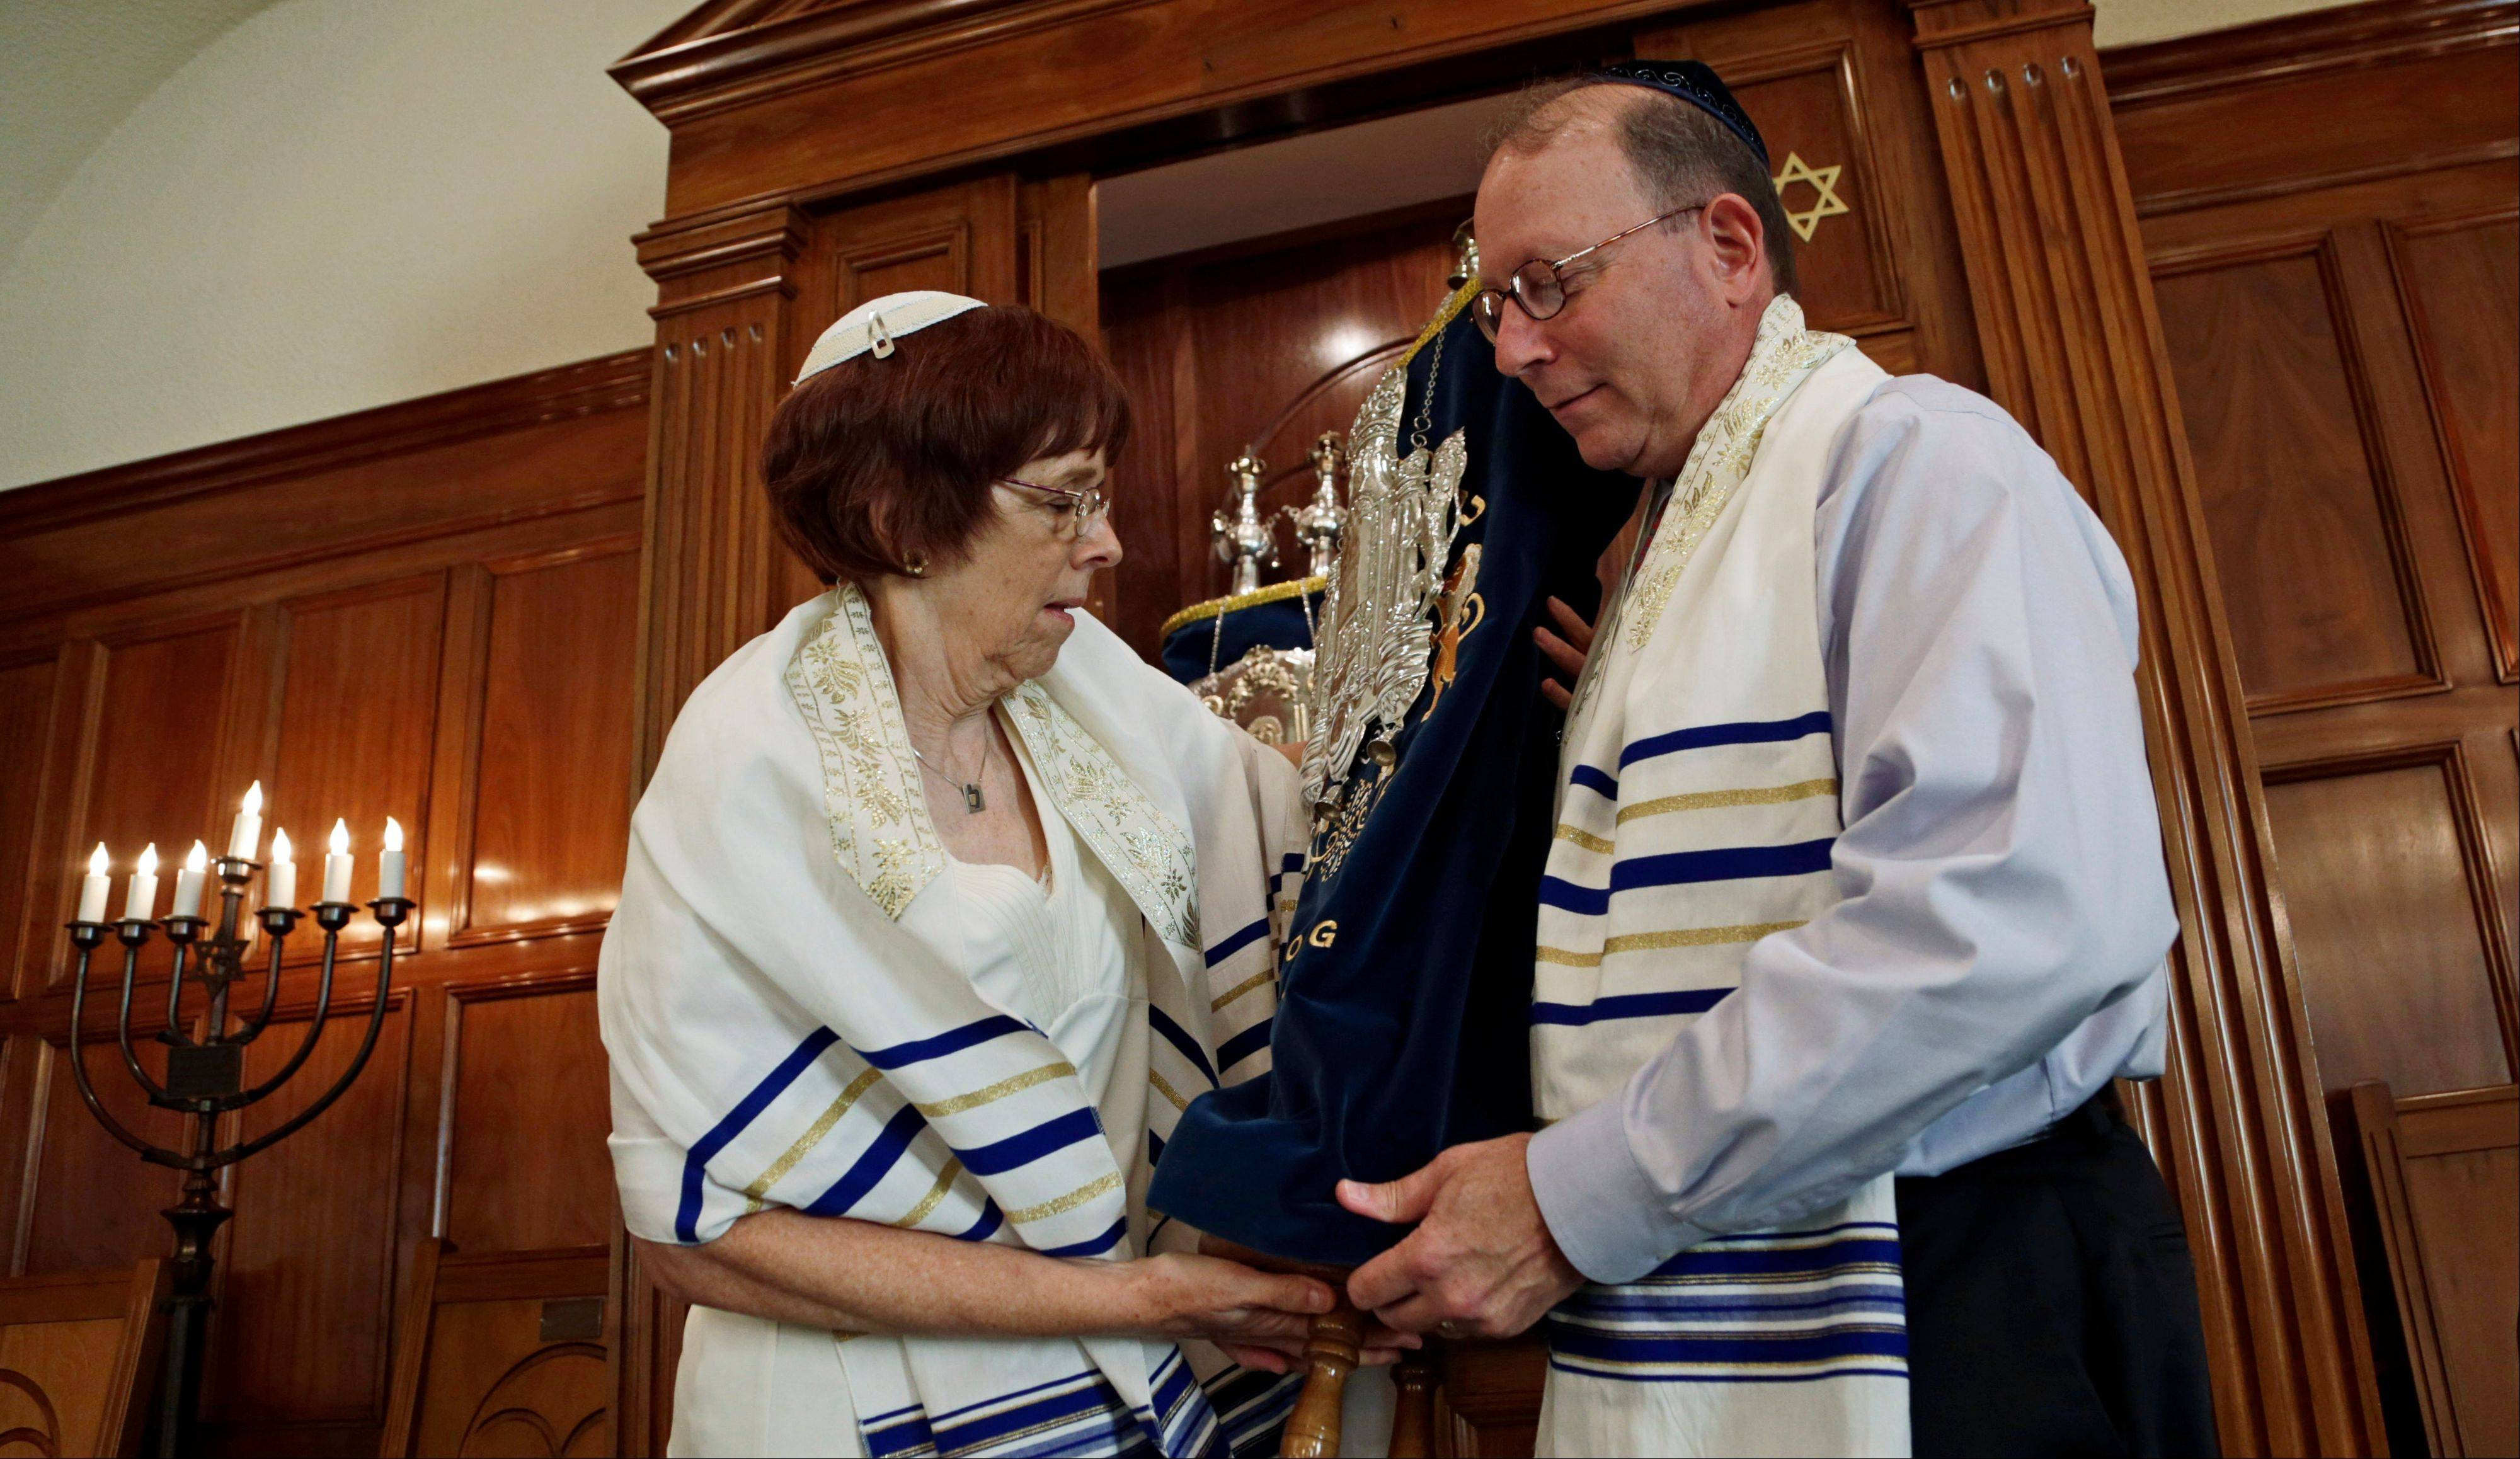 In this Oct. 2, 2013 photo, Rabbi Lynne Goldsmith and her husband Rob Goldsmith remove the Torah from the Ark inside Temple Emanu-El in Dothan, Ala. Faced with a dwindling, aging congregation, members of a south Alabama synagogue five years ago began recruiting Jews to move to Dothan with the promise of $50,000 in relocation assistance.